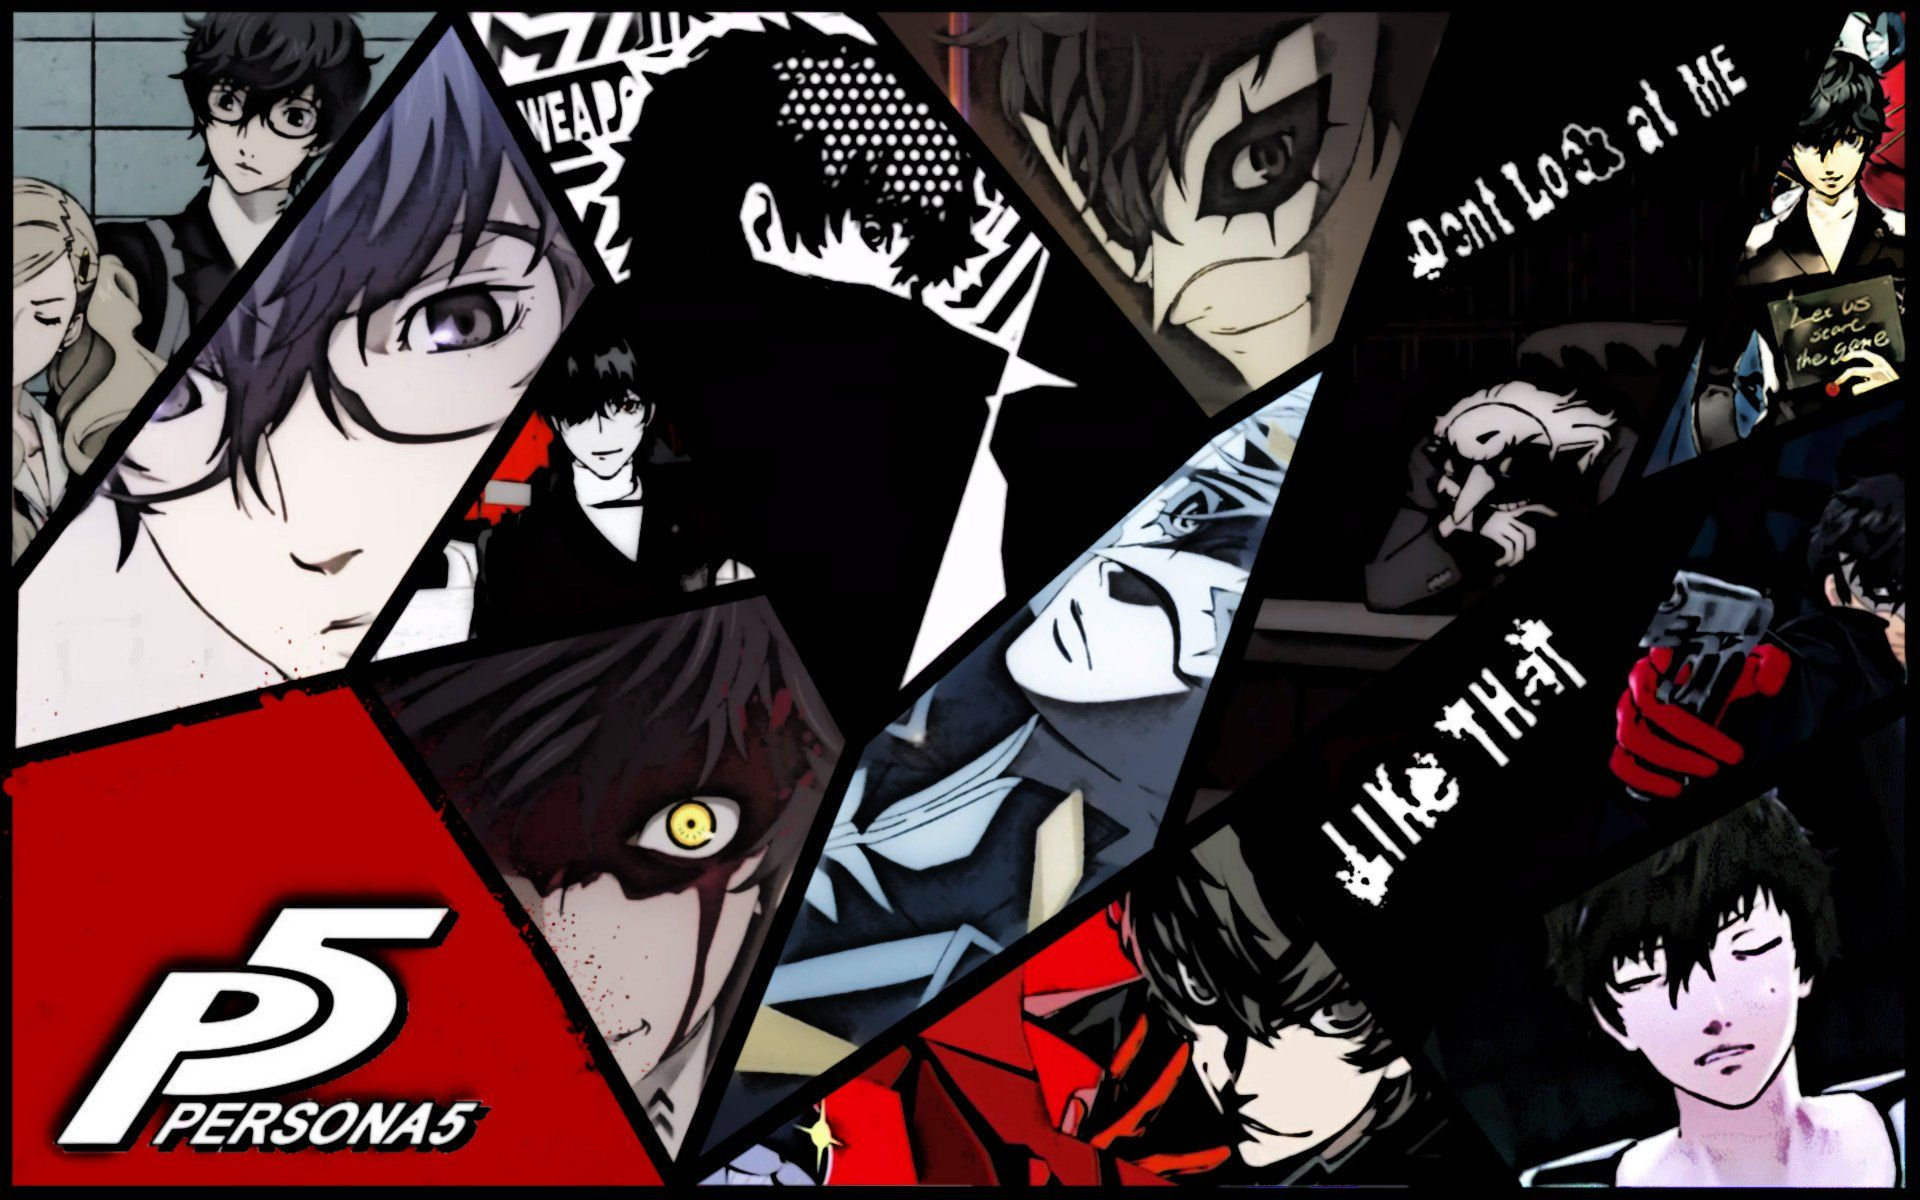 persona 5 star background